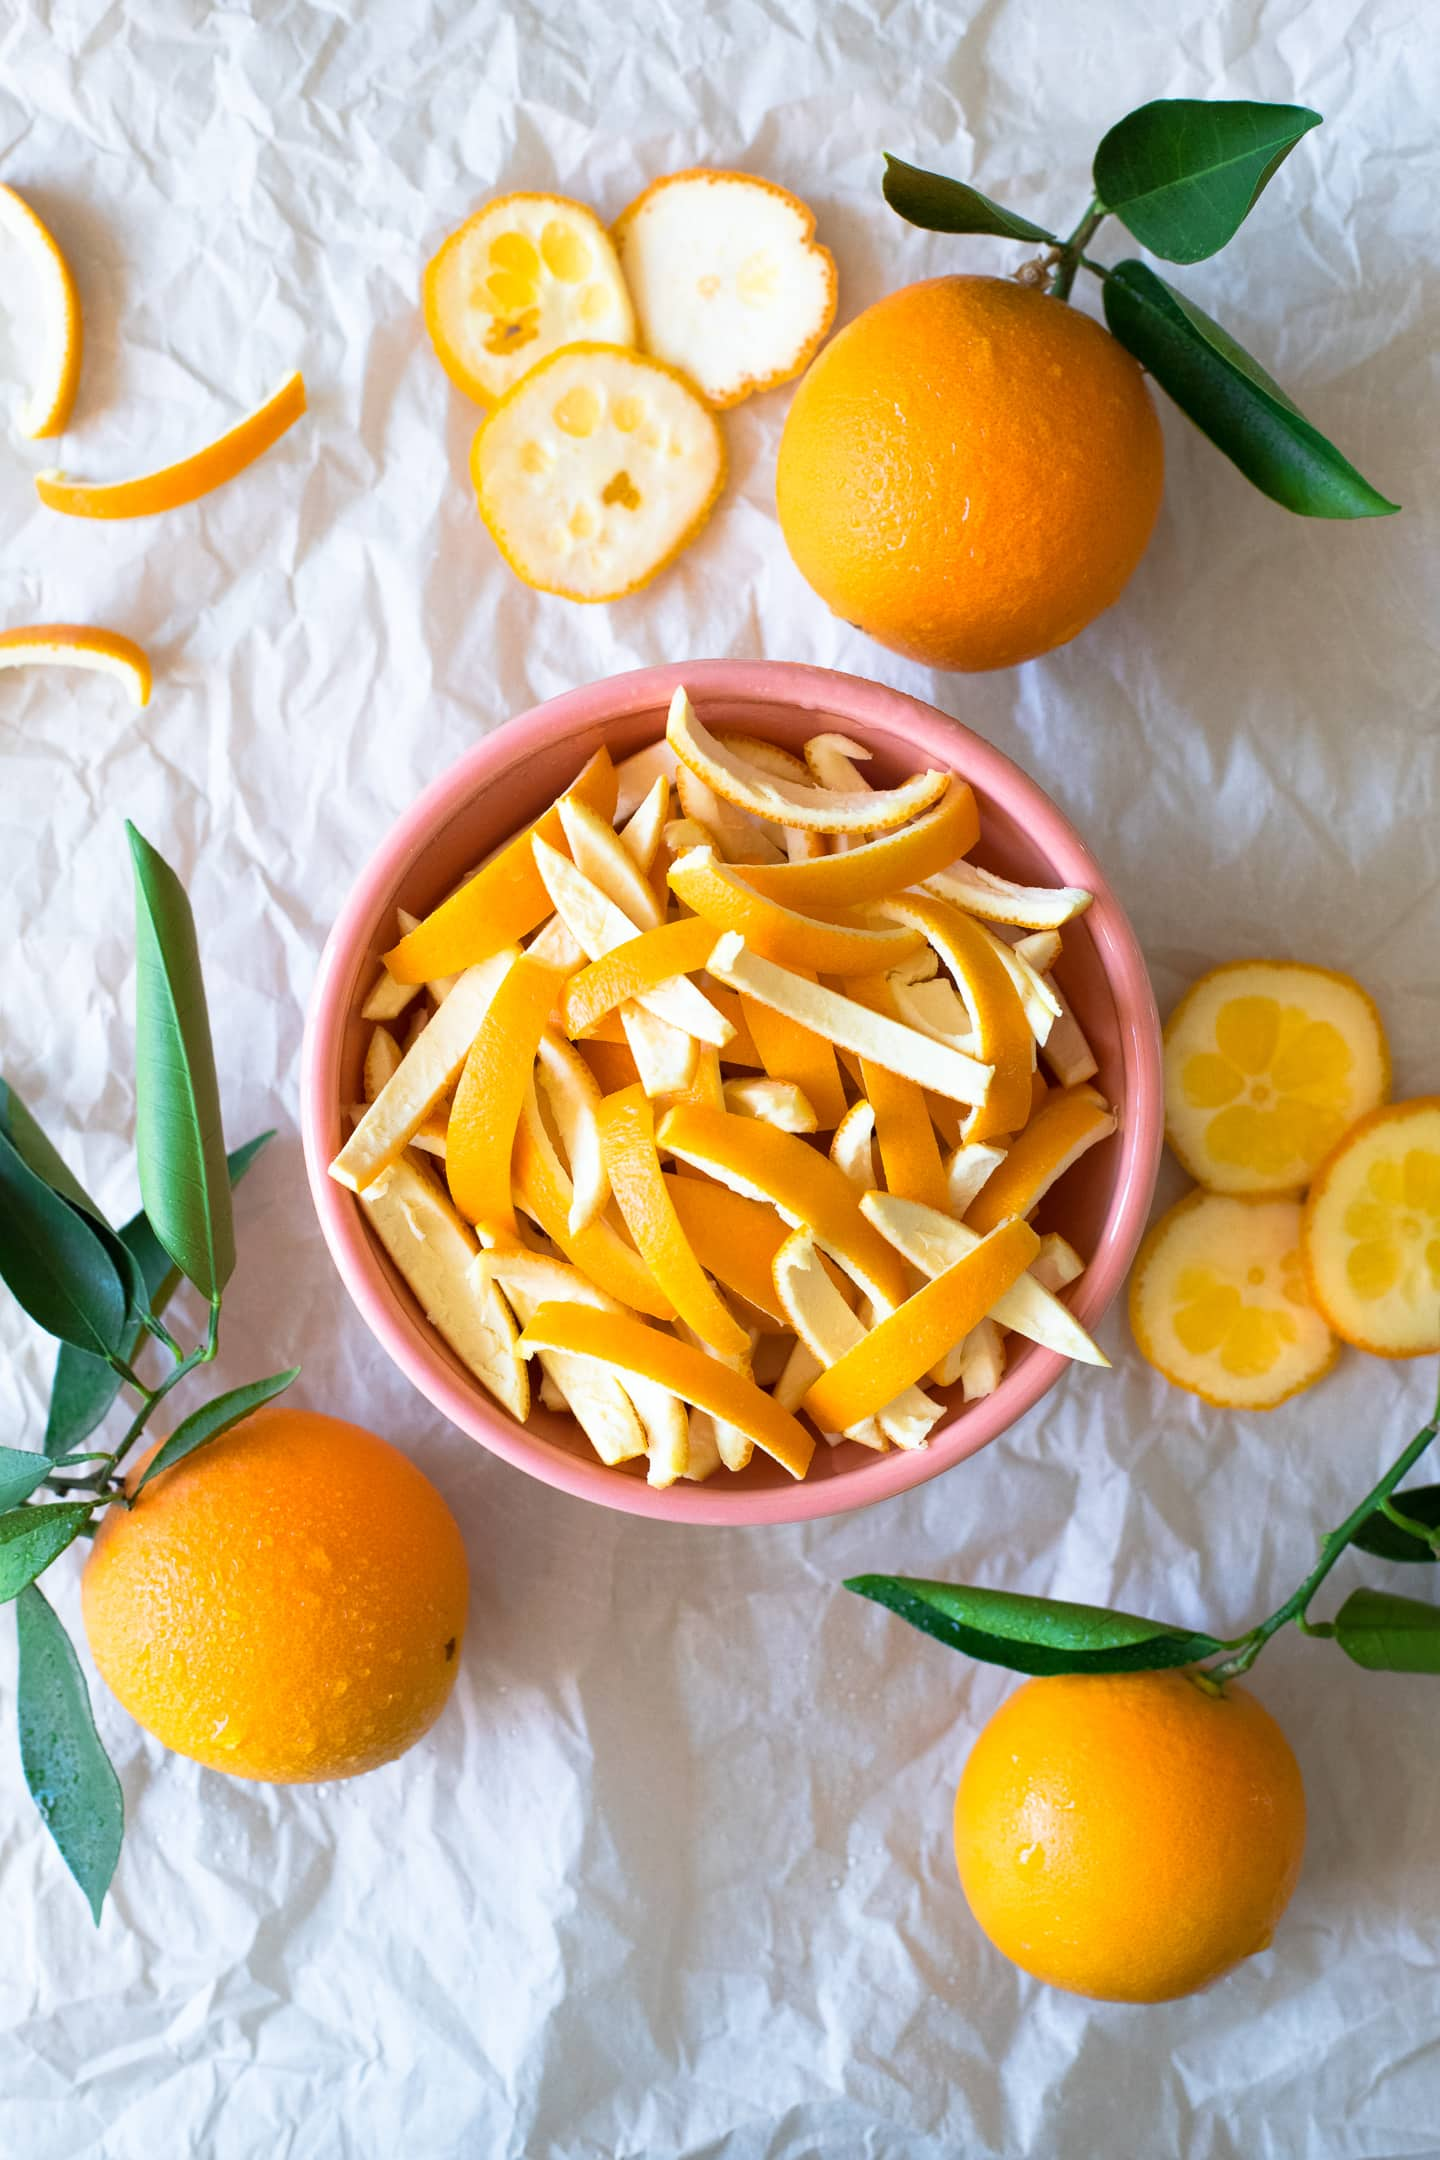 Overhead view of strips of orange peel in a bowl, surrounded by more oranges and peel cuttings.